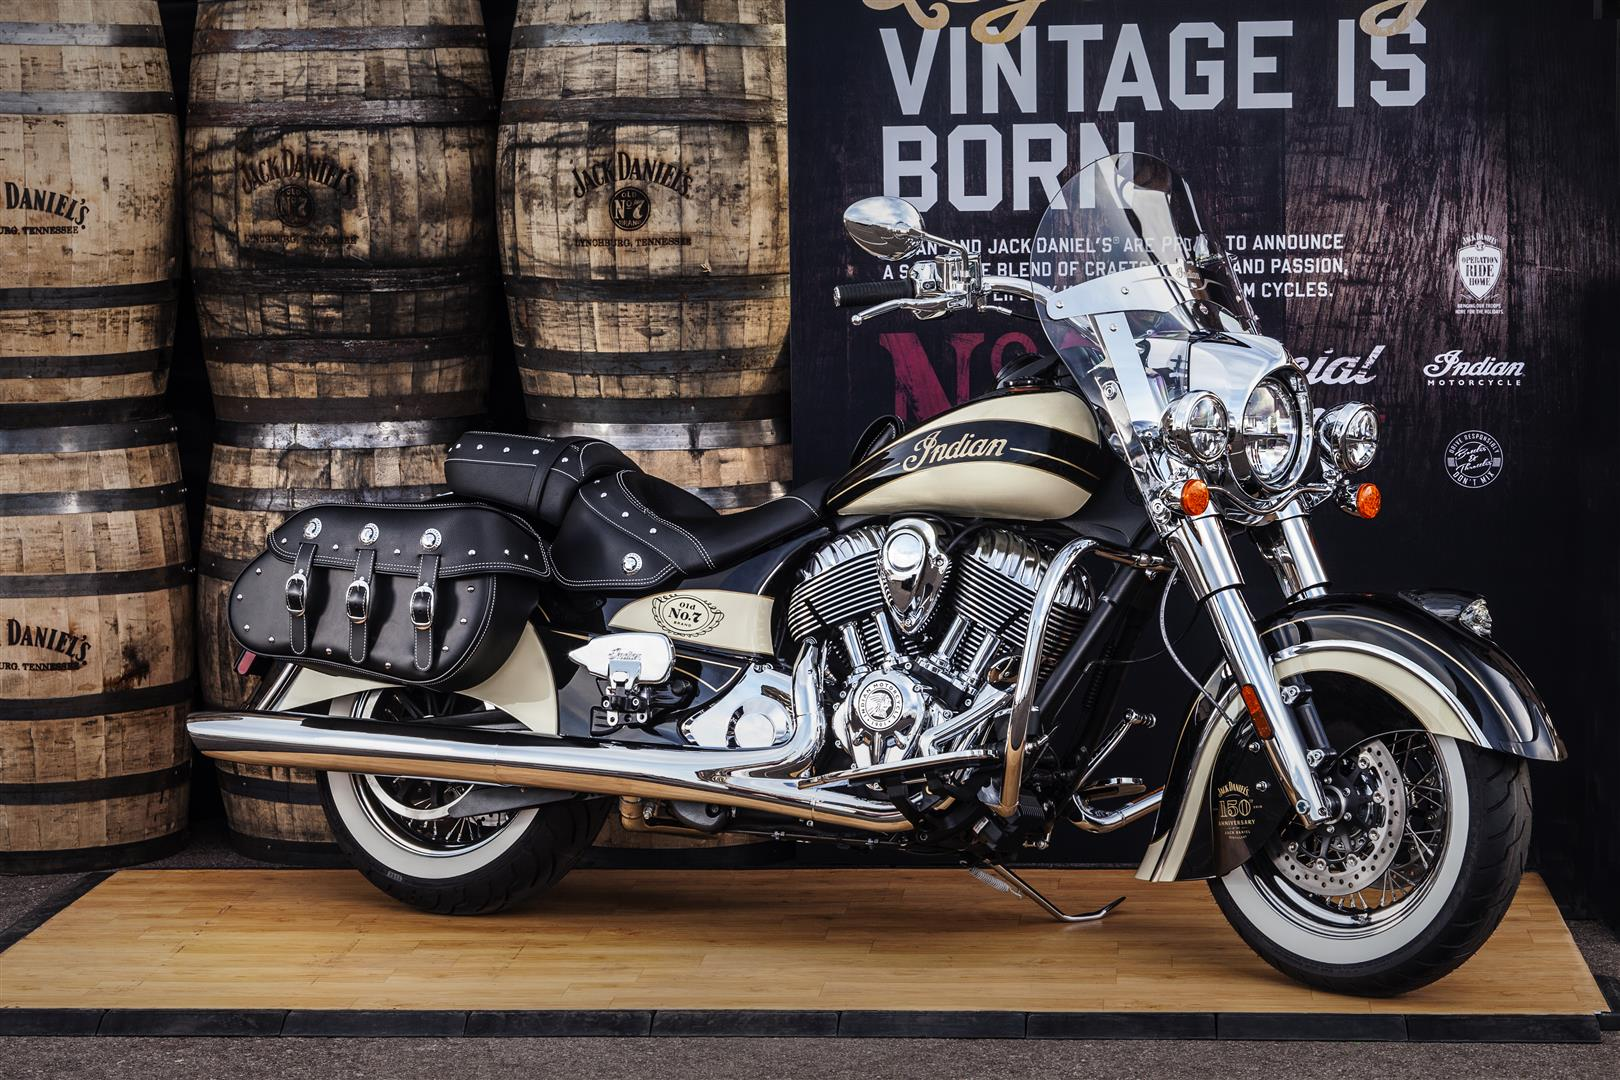 001 LIMITED EDITION JACK DANIELS INDIAN CHIEF VINTAGE MOTORCYCLE AUCTIONED AT BARRETT JACKSON LAS VEGAS